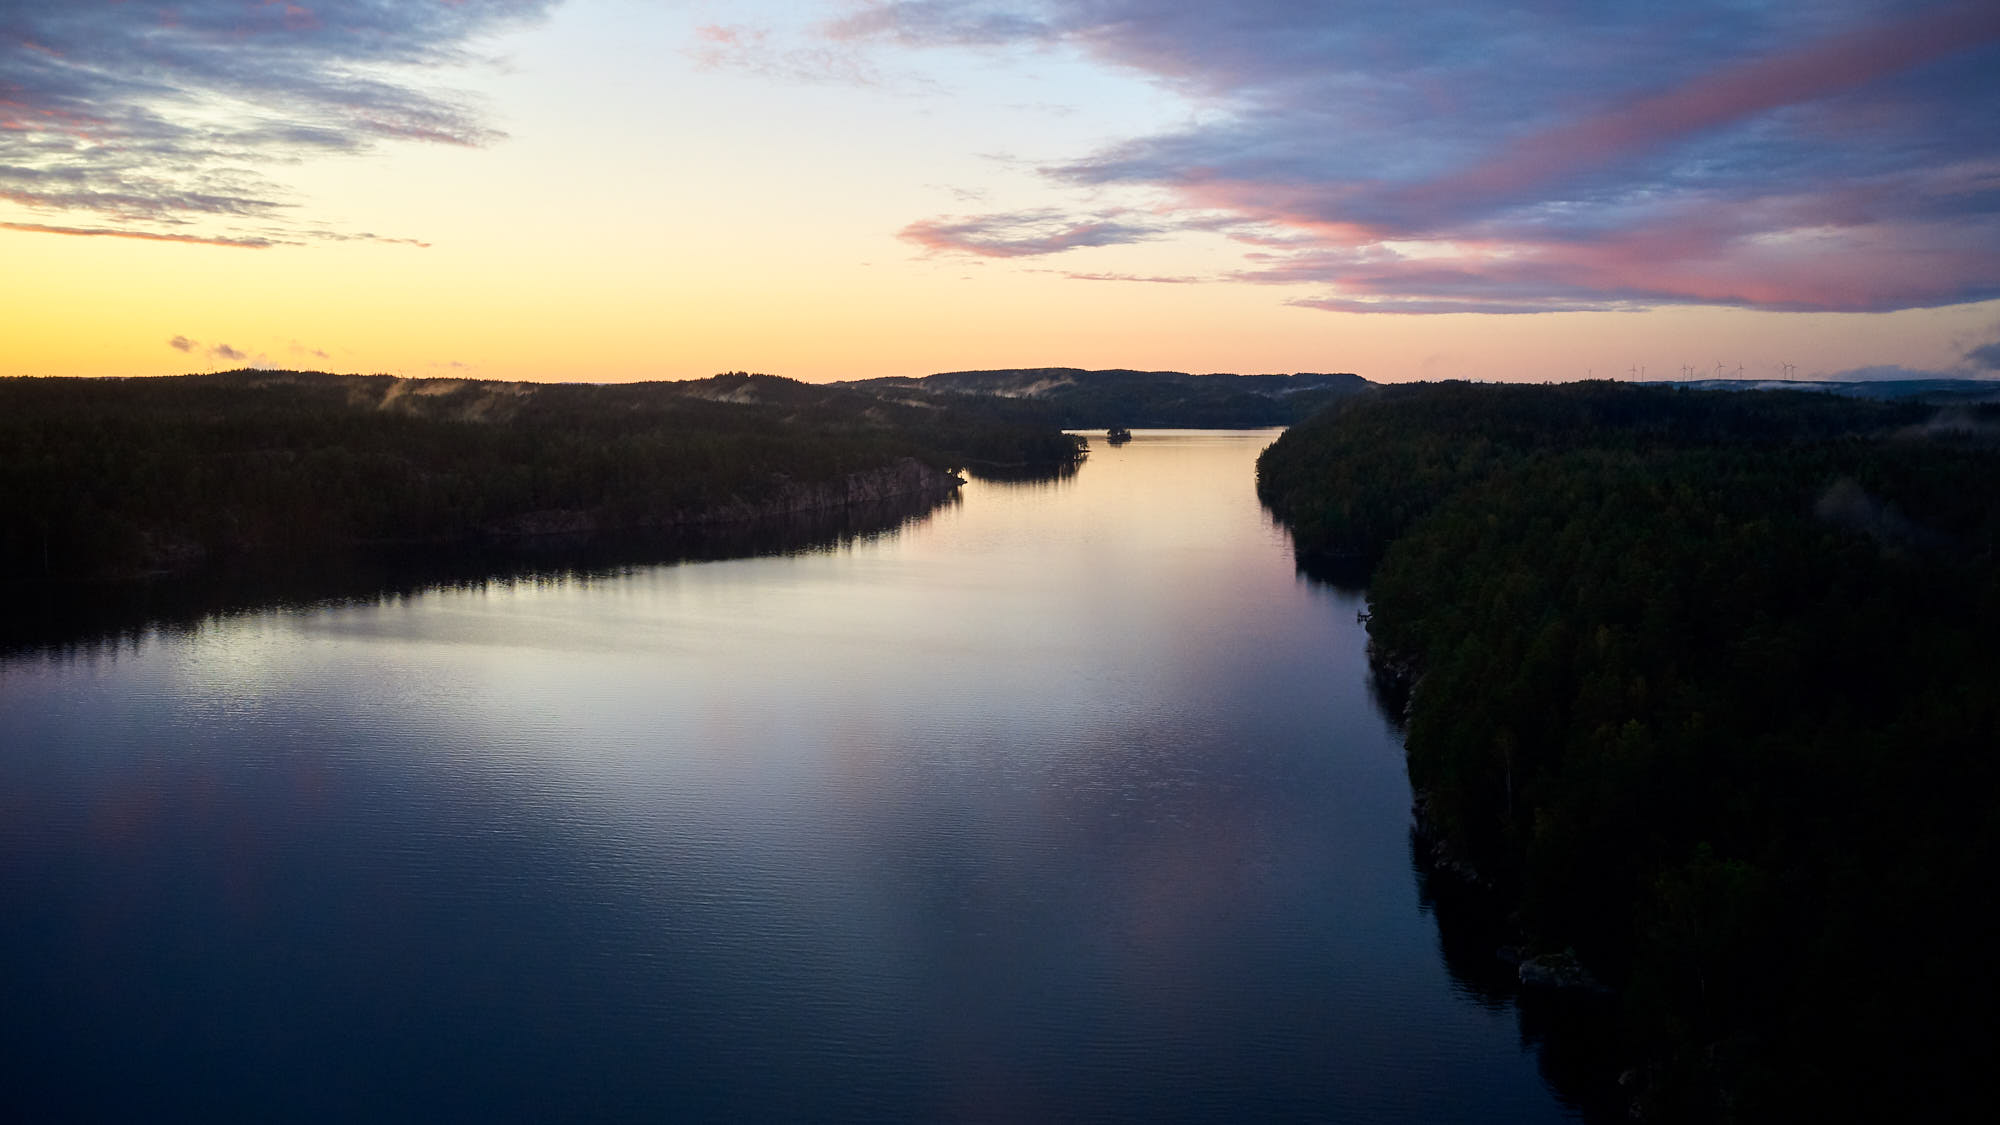 Dramatic sunset over a Swedish river